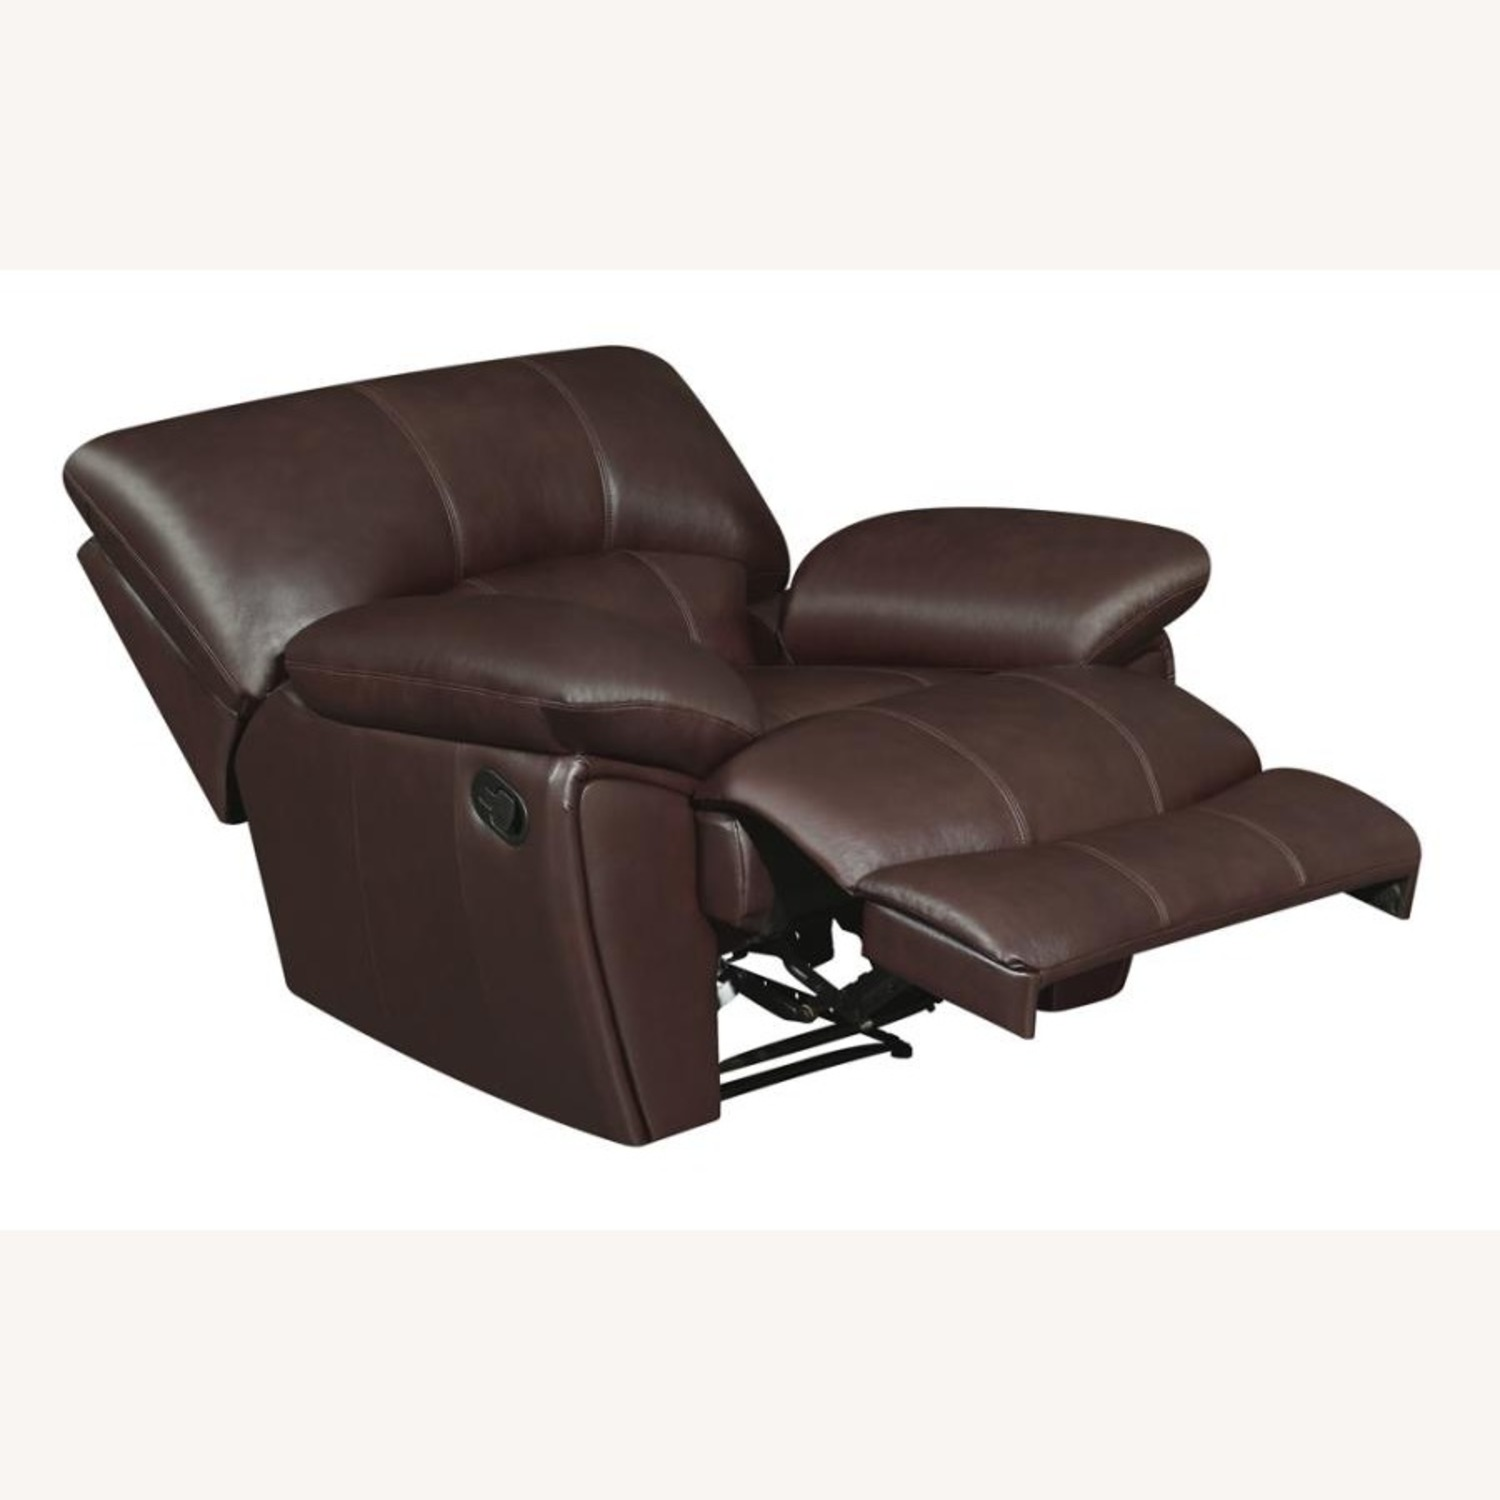 Recliner Chair In Chocolate Top Grain Leather - image-1